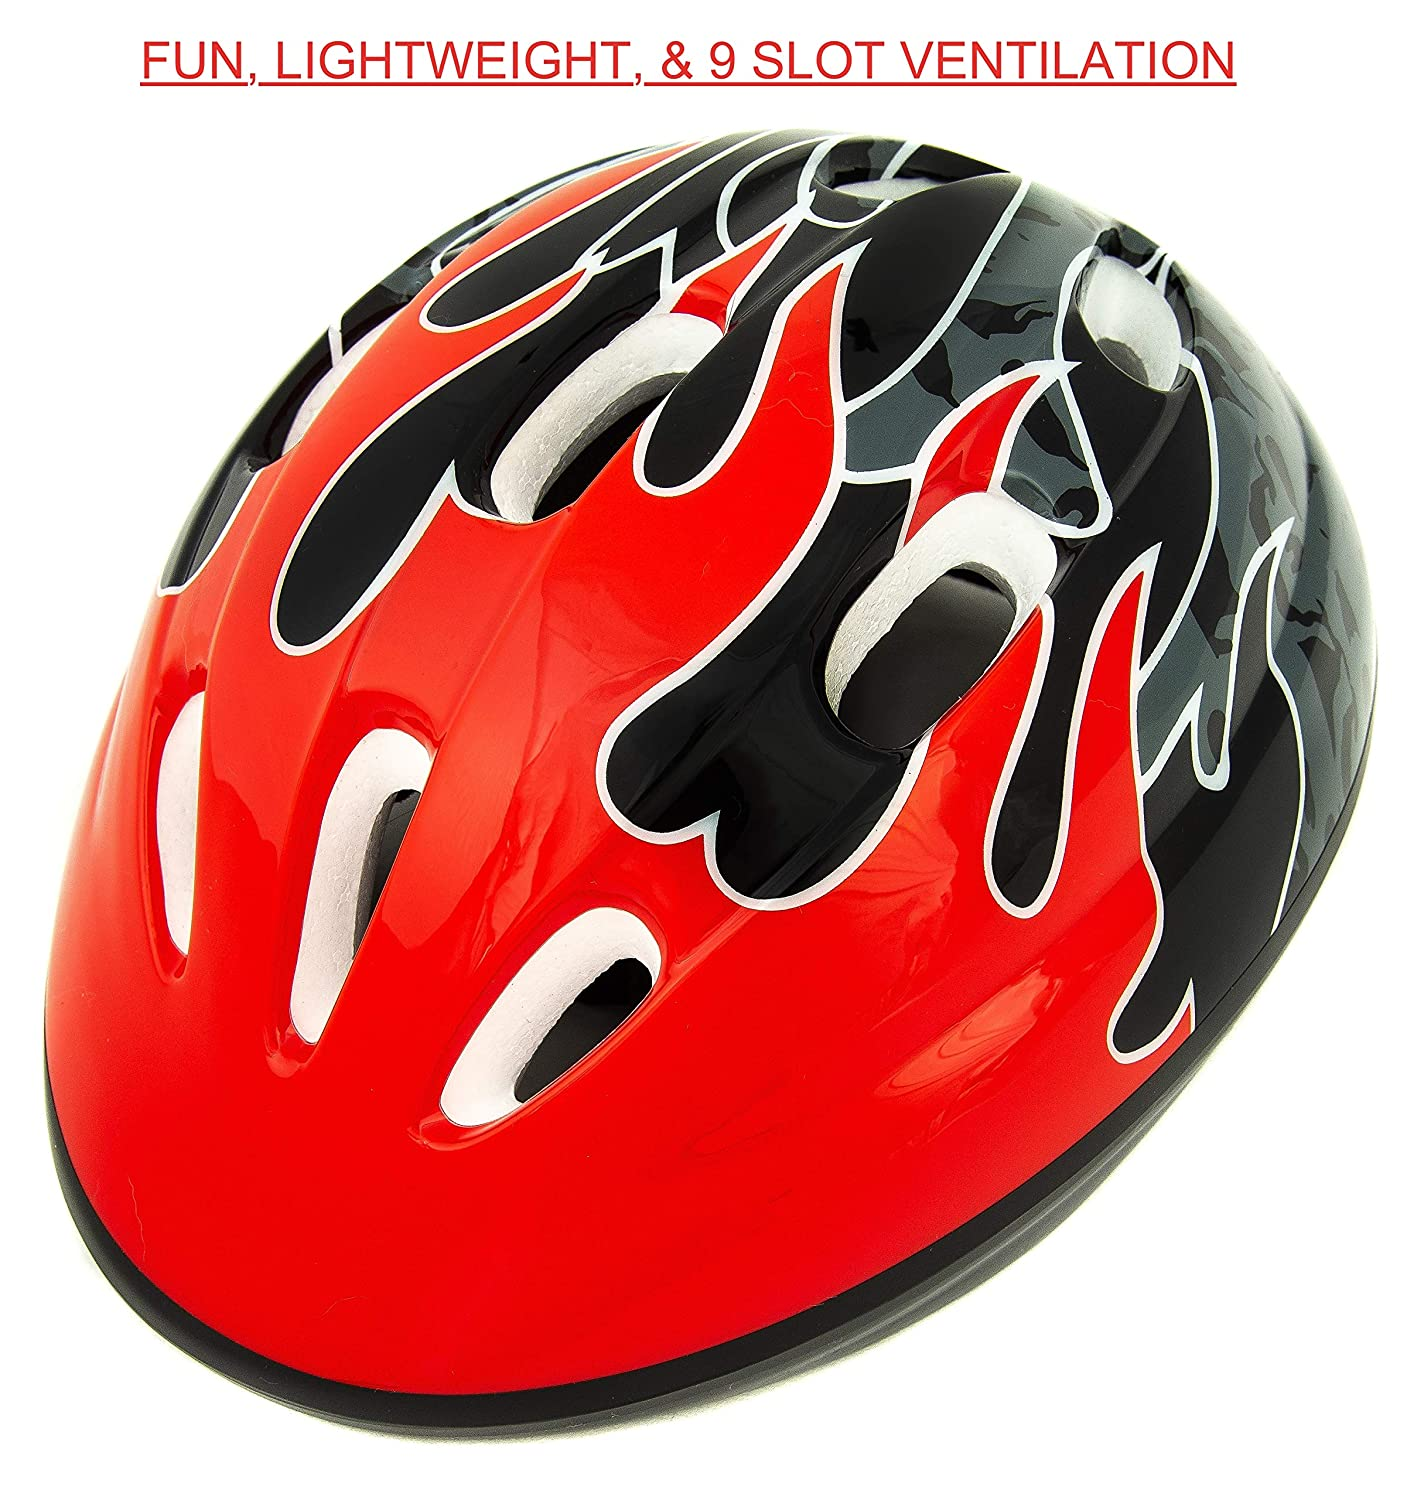 Baby Solo Toddler Bike Helmet Safe Adjustable CSPC Certified Vented 2-5 Years Old Boy and Girl Colors Lightweight